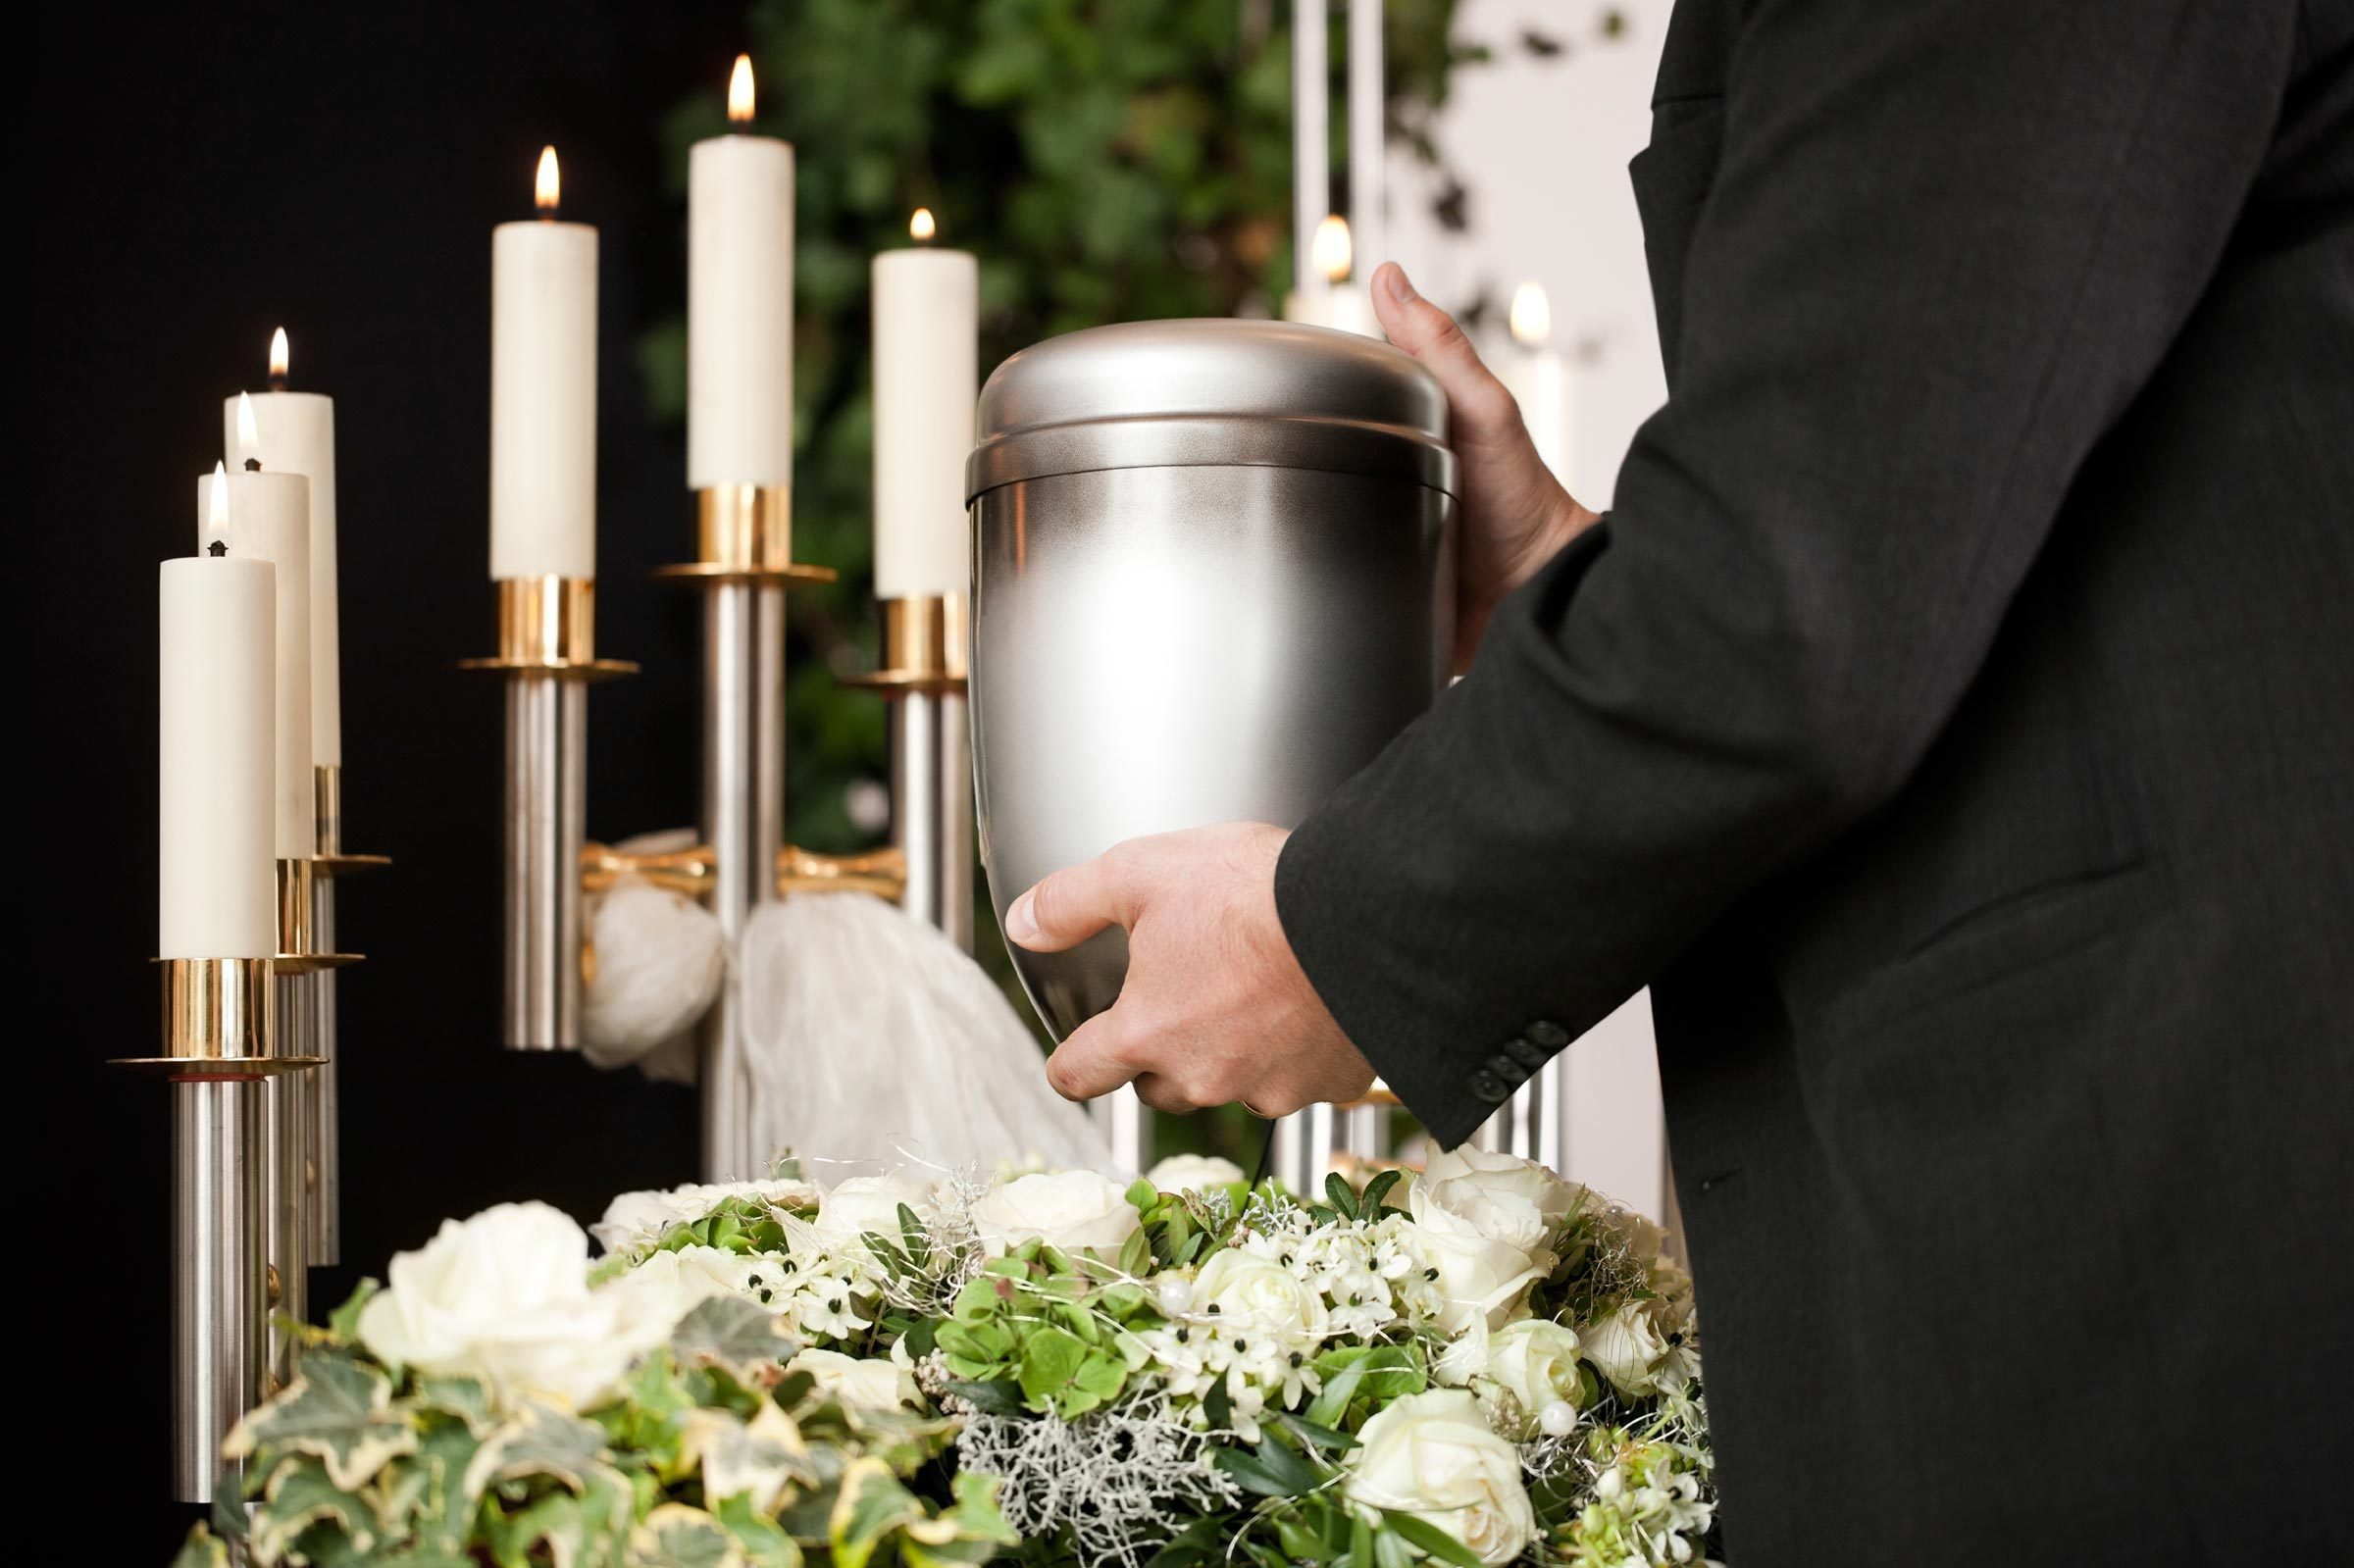 9. Ask the crematory to return the ashes in a plain metal or plastic container — not one stamped temporary container.